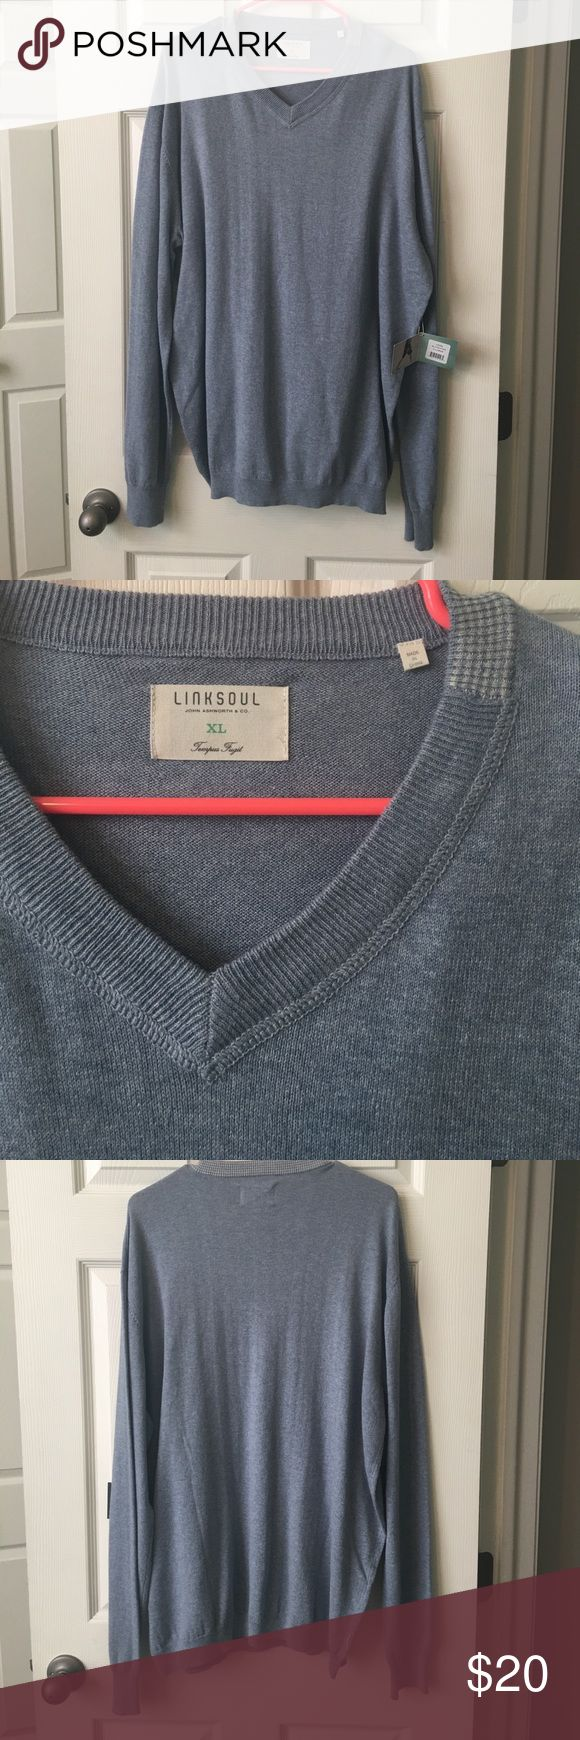 Men's golf Sweater from Linksoul size XL Linksoul men's golf sweater size XL it is a light blue color new with tags. Price is negotiable linksoul Sweaters V-Neck